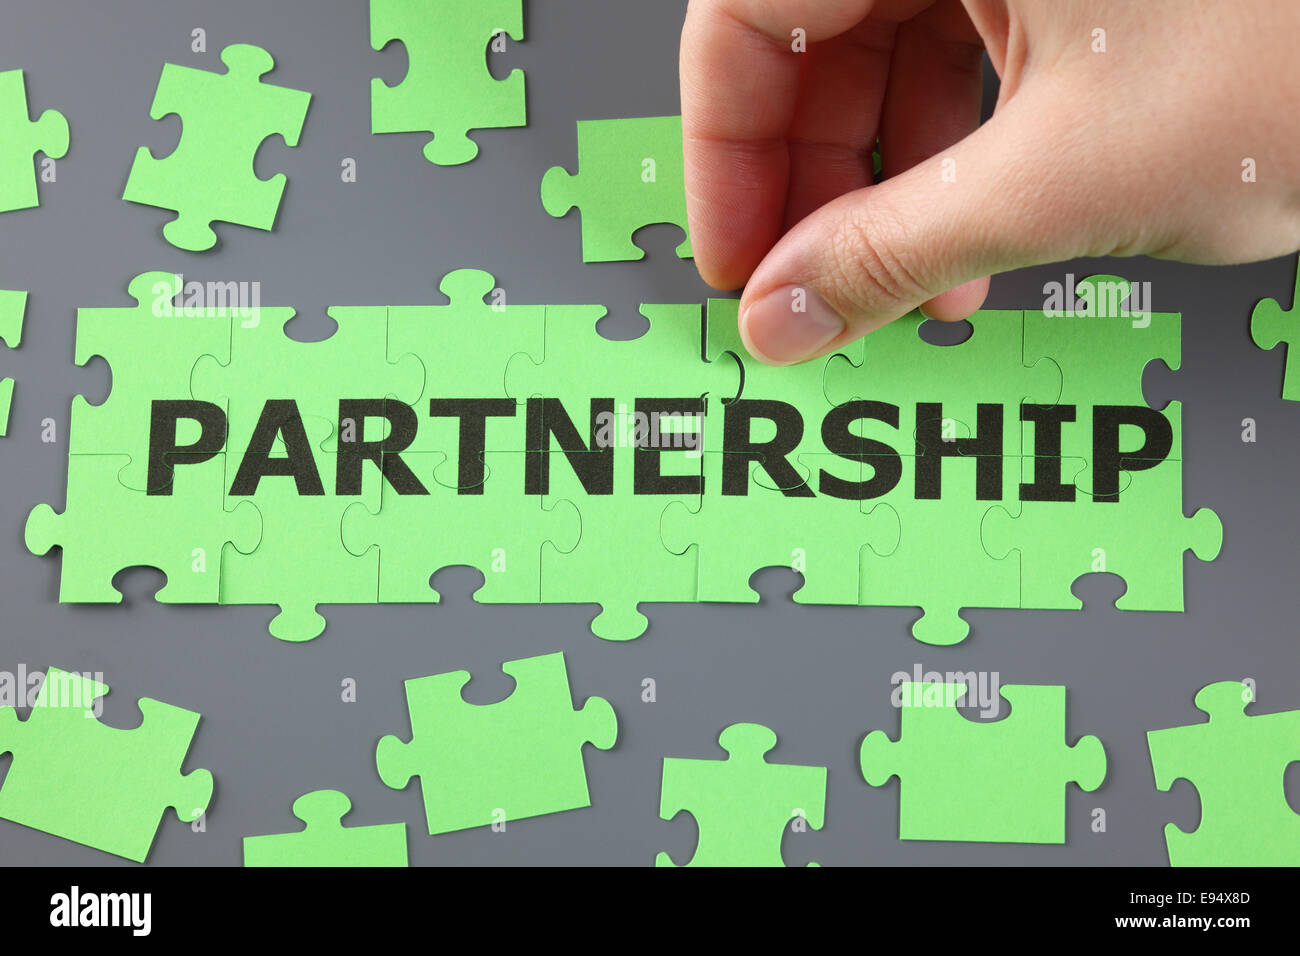 Woman's hand completing  jigsaw puzzle with word 'Partnership'. - Stock Image